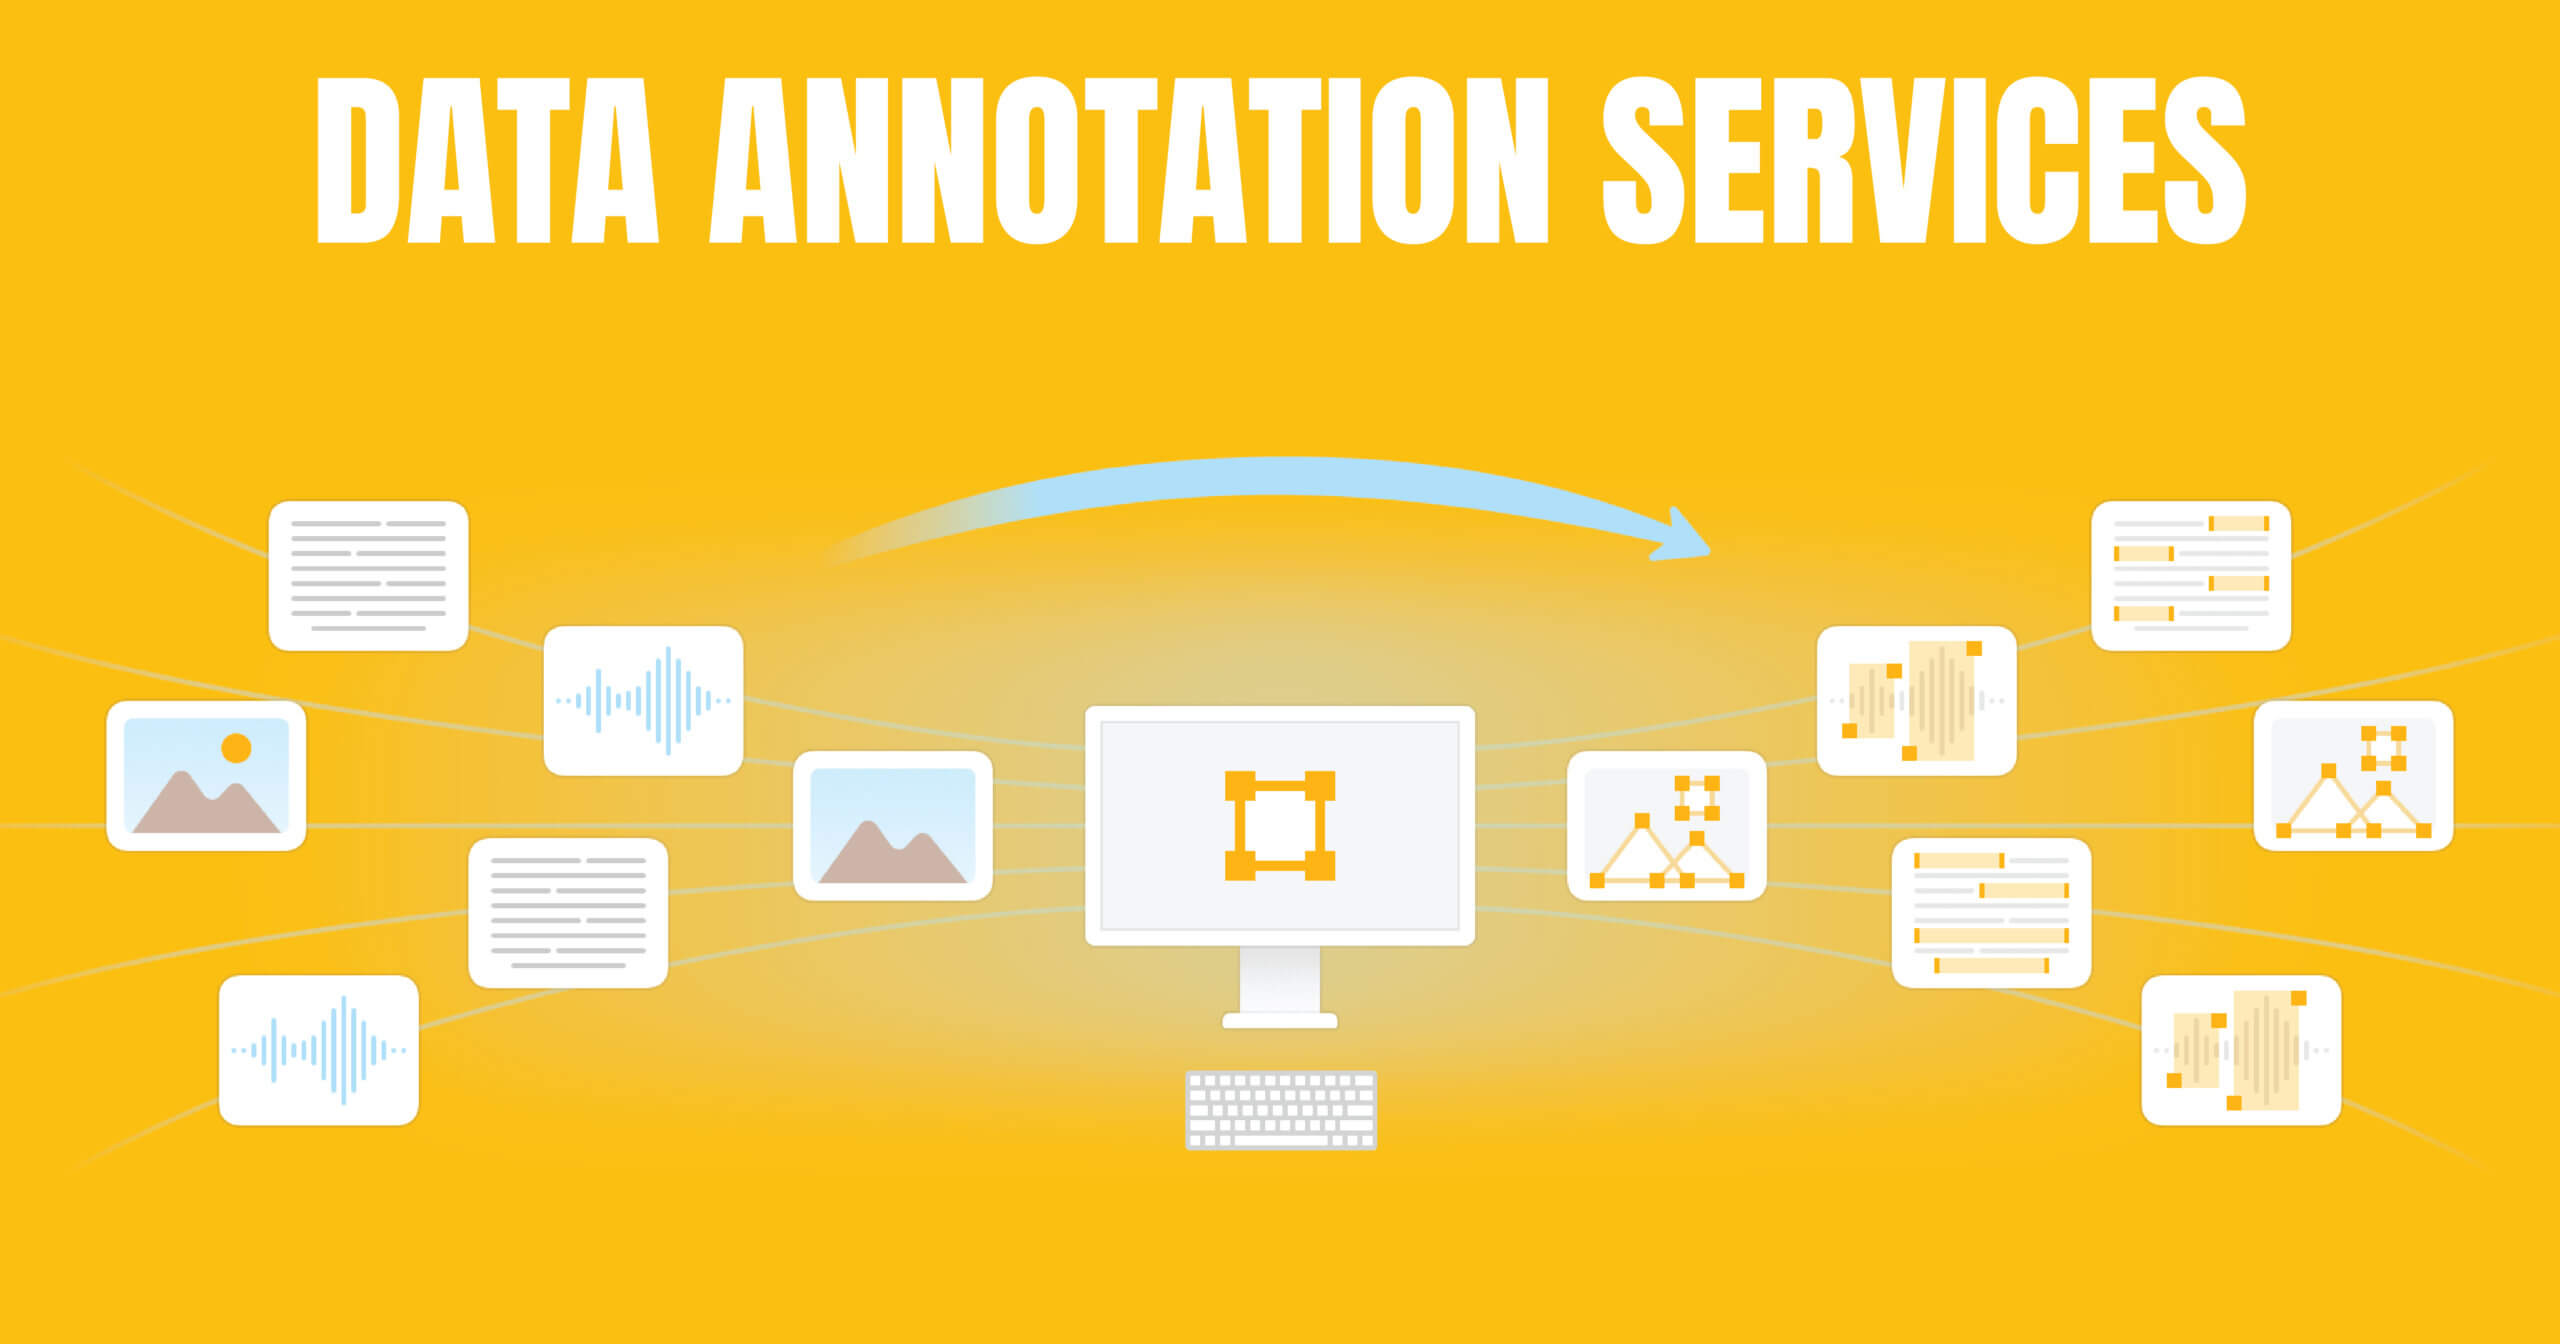 Data Annotation Services